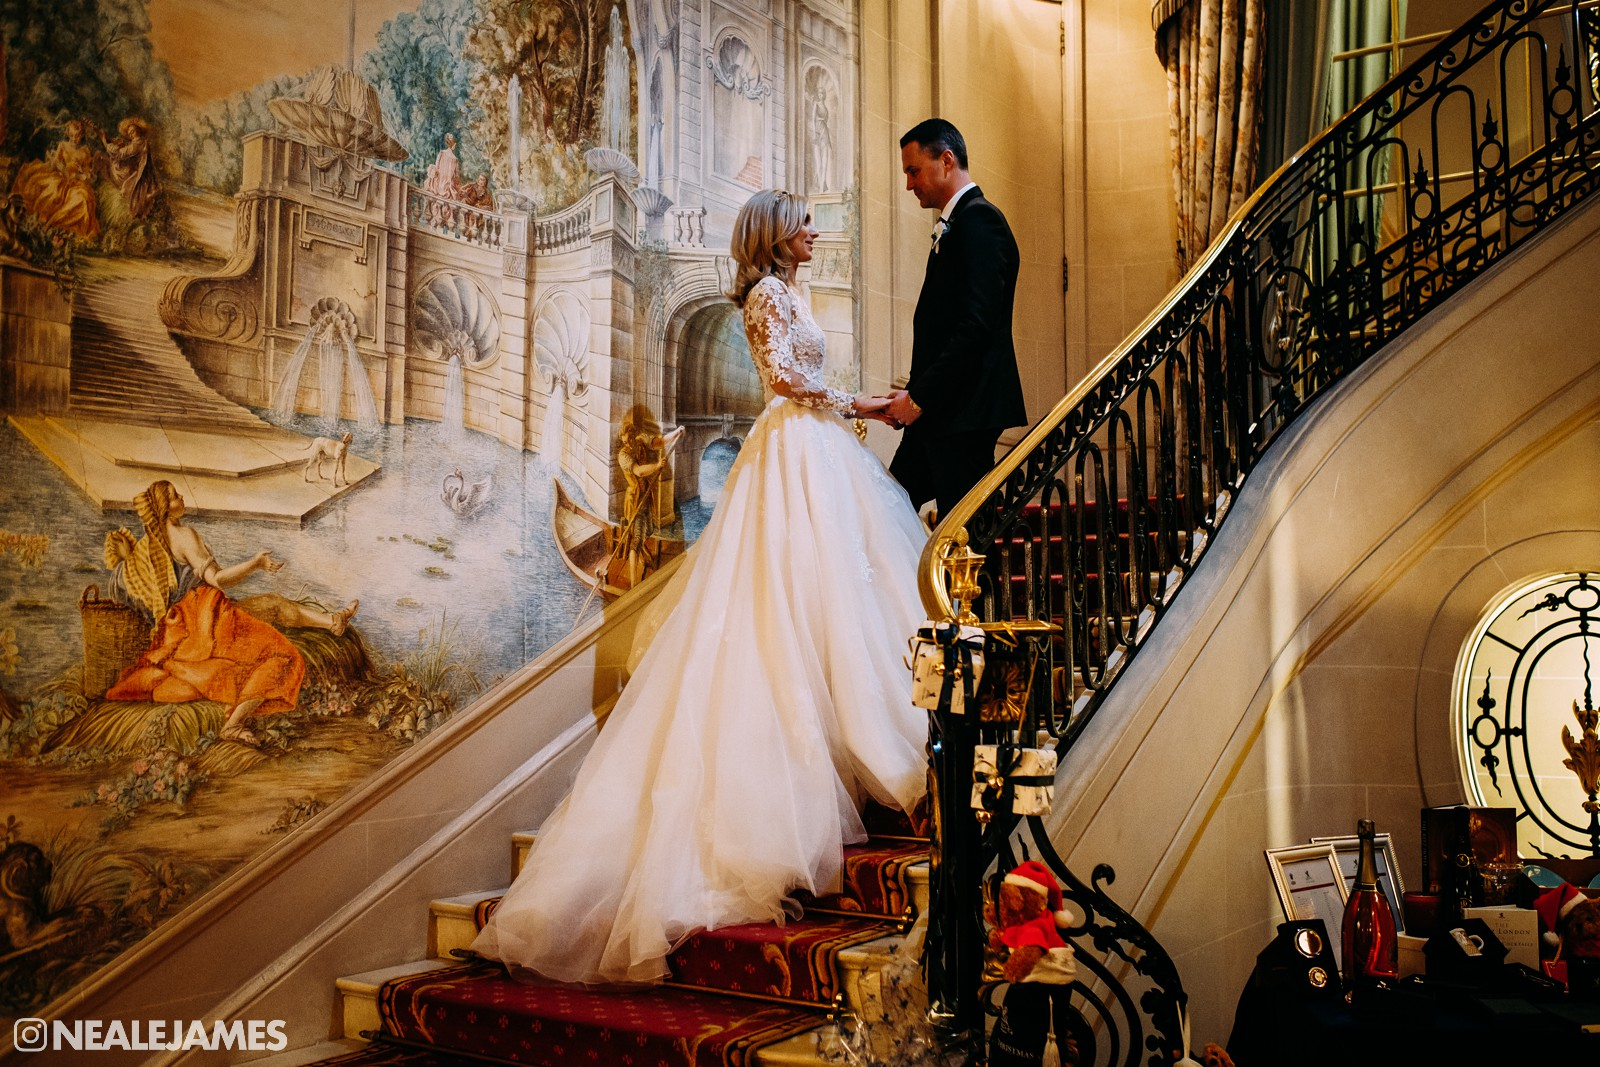 Colour picture of a couple getting married at The Ritz London